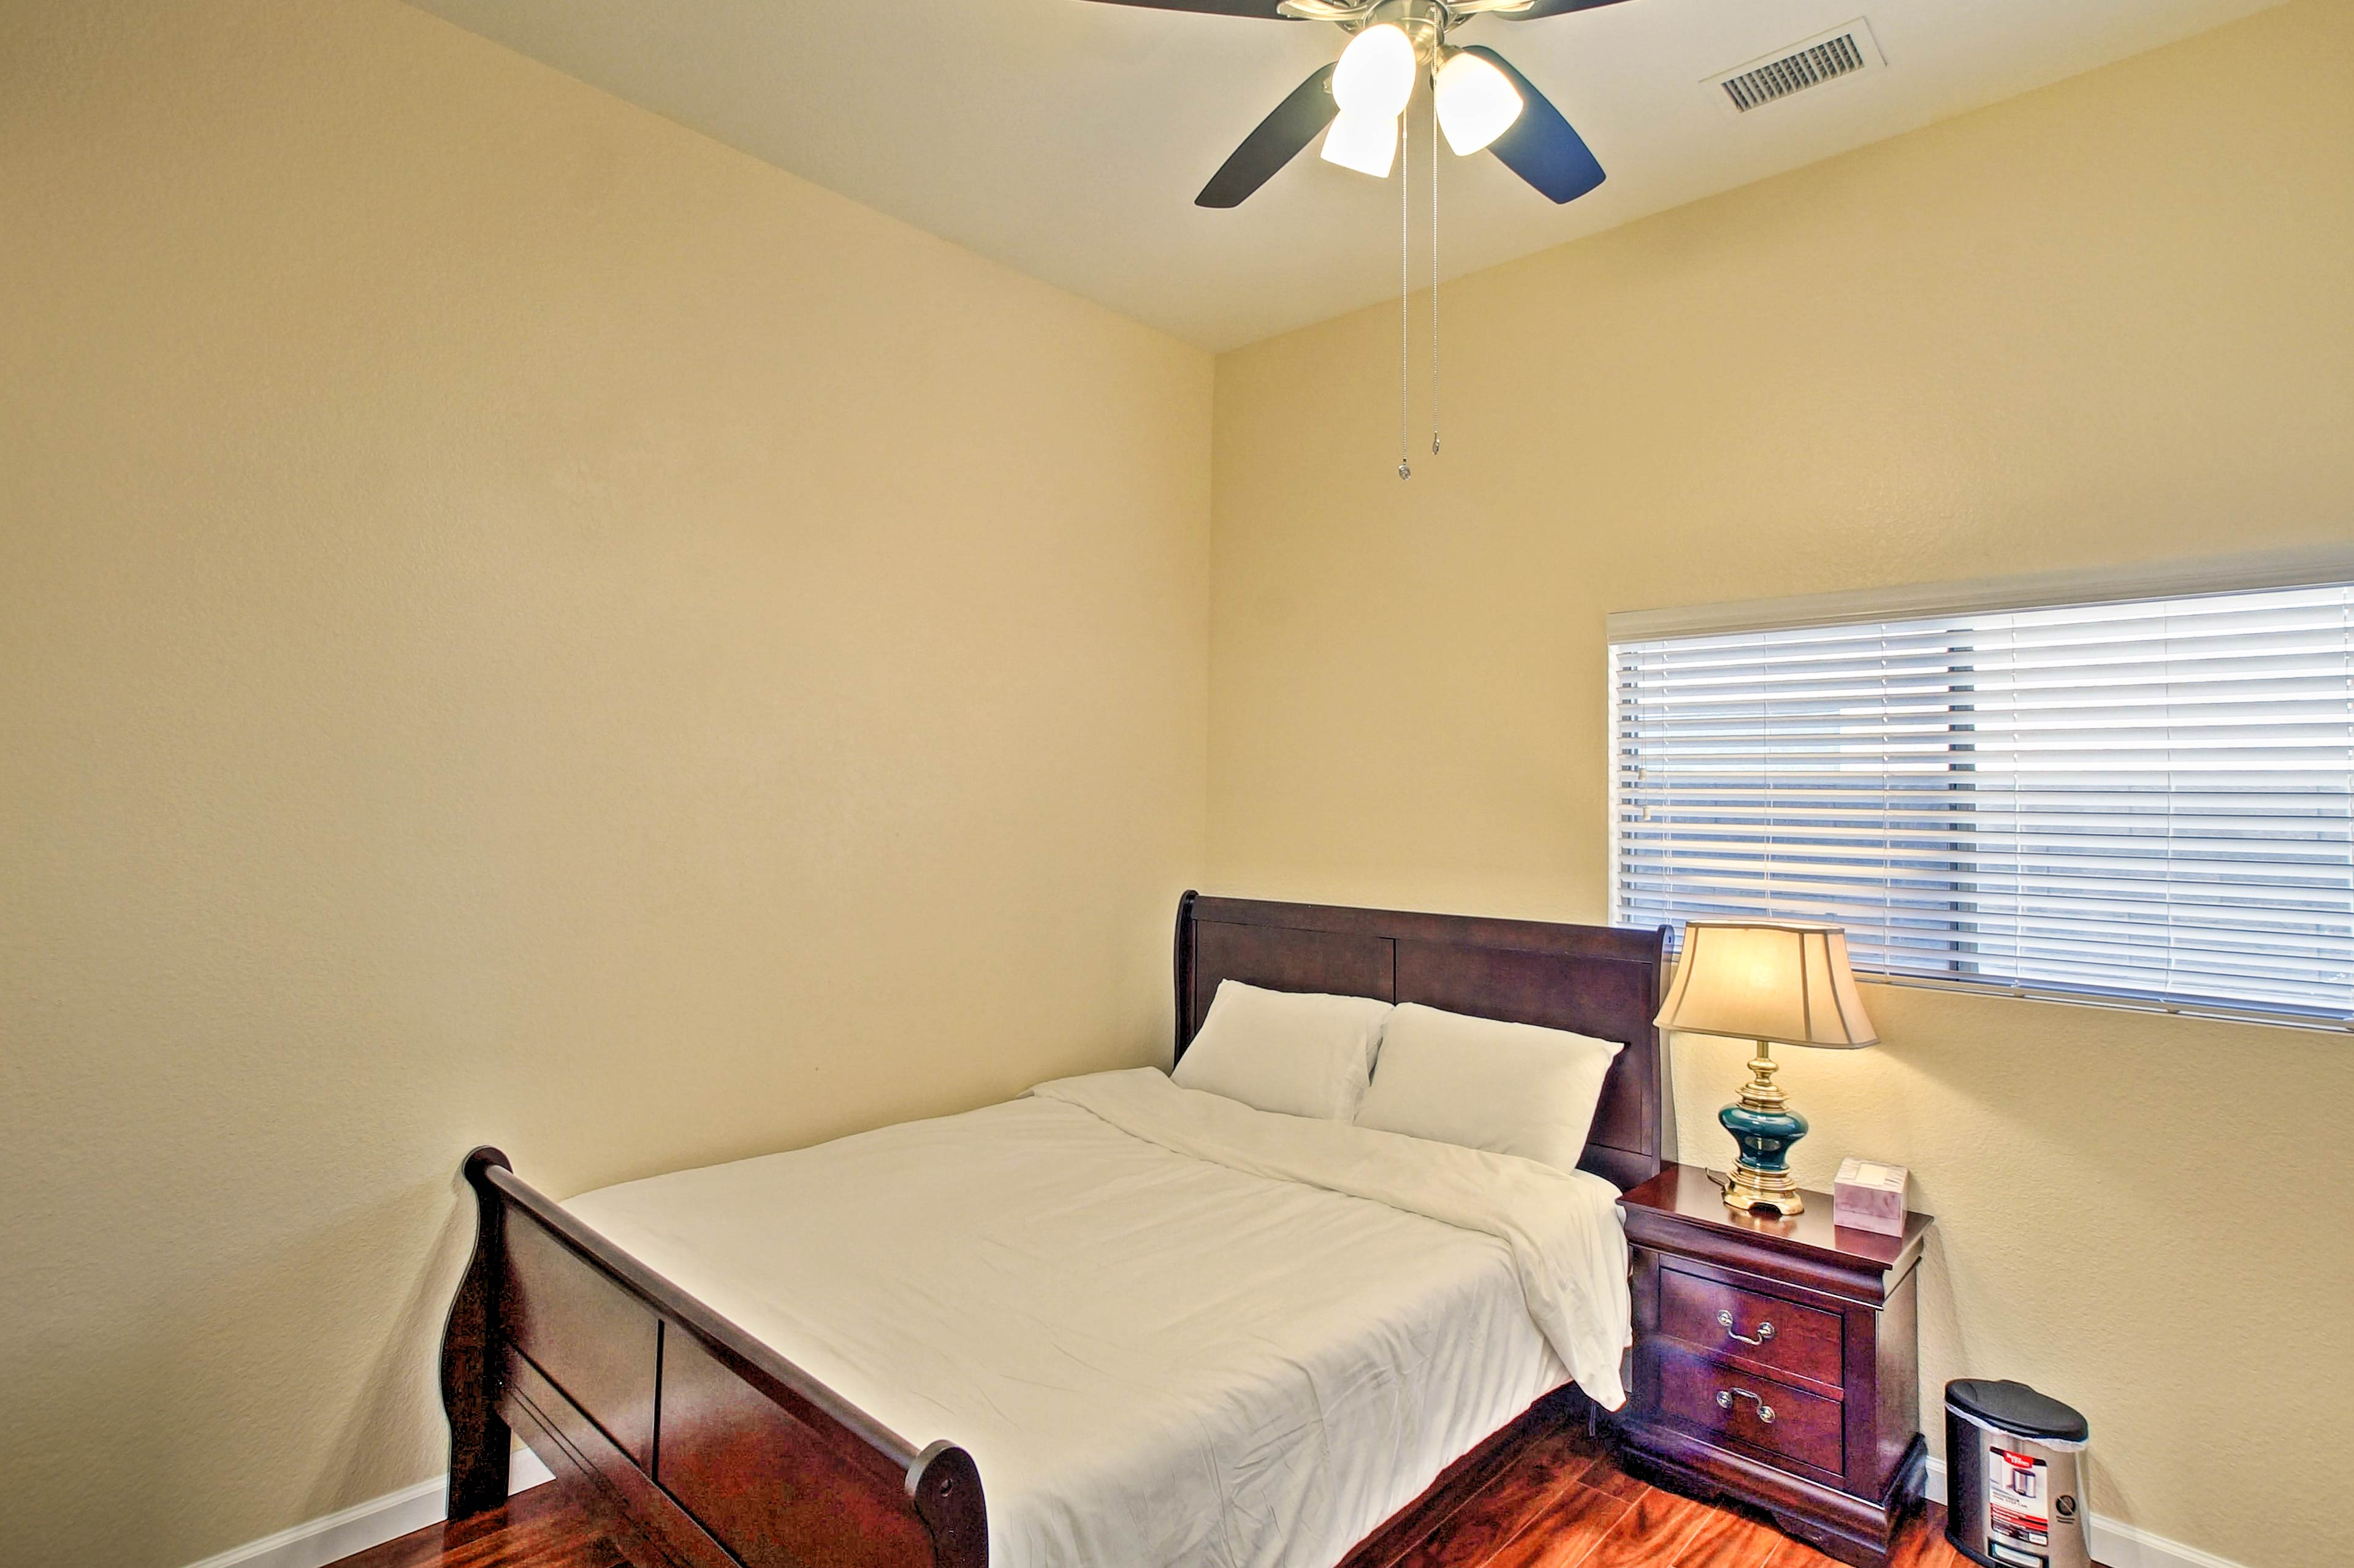 The second bedroom has a queen-sized bed.